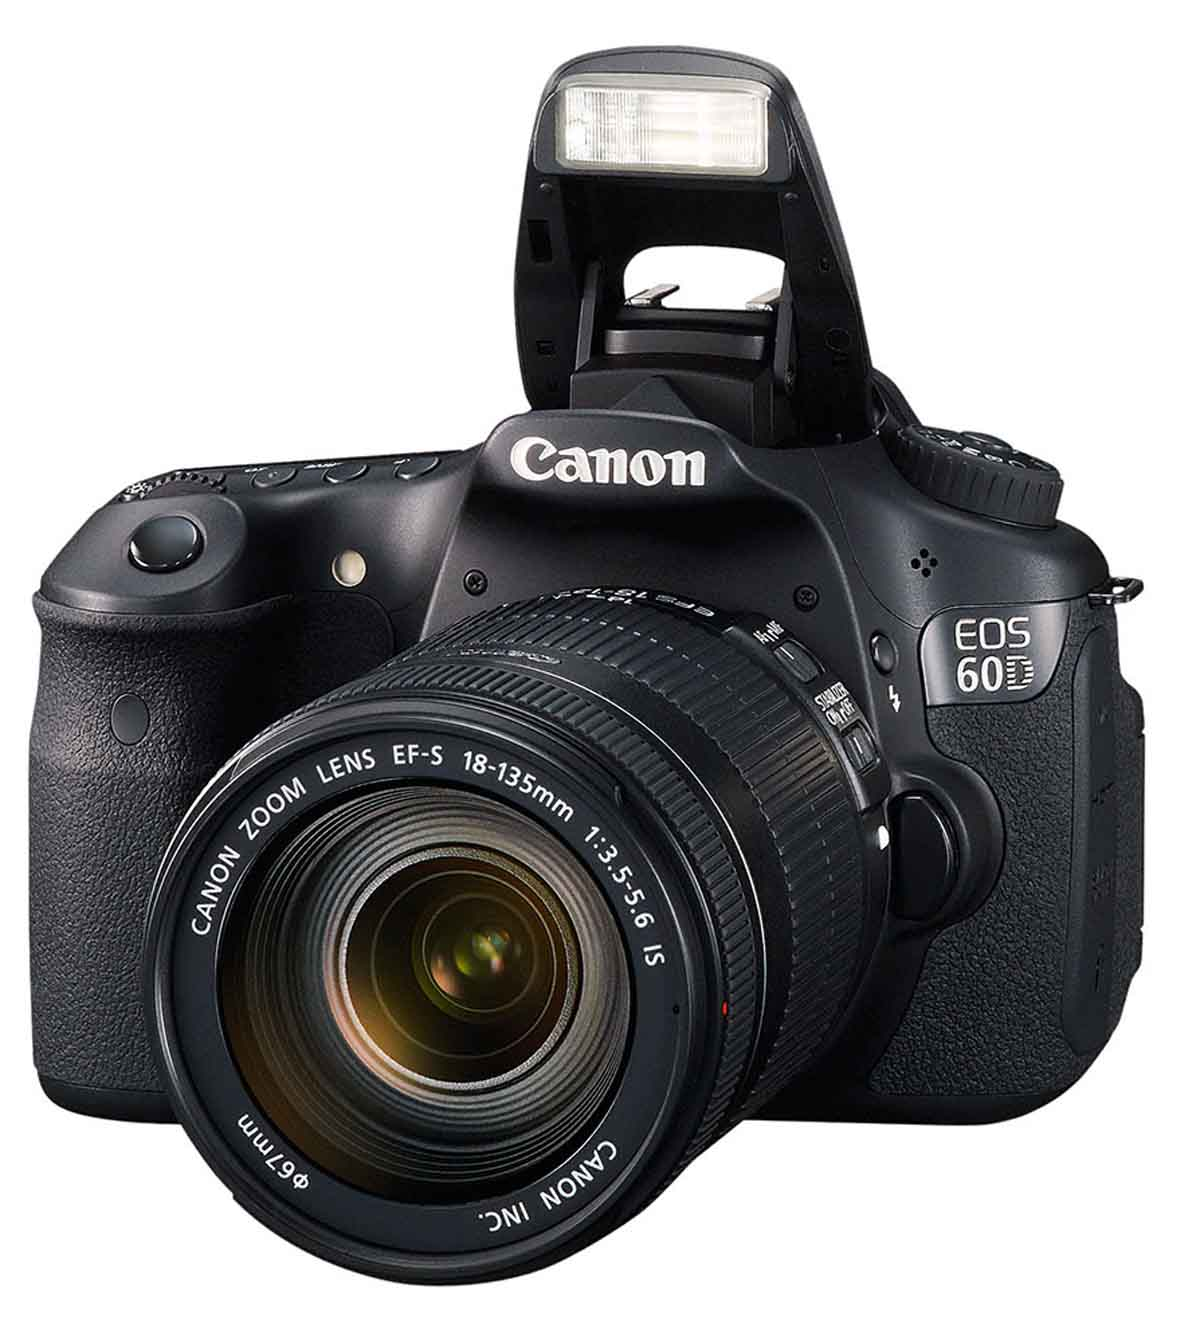 [original authentic] Canon Digital SLR camera EOS 60d (18-135) Hong Kong version